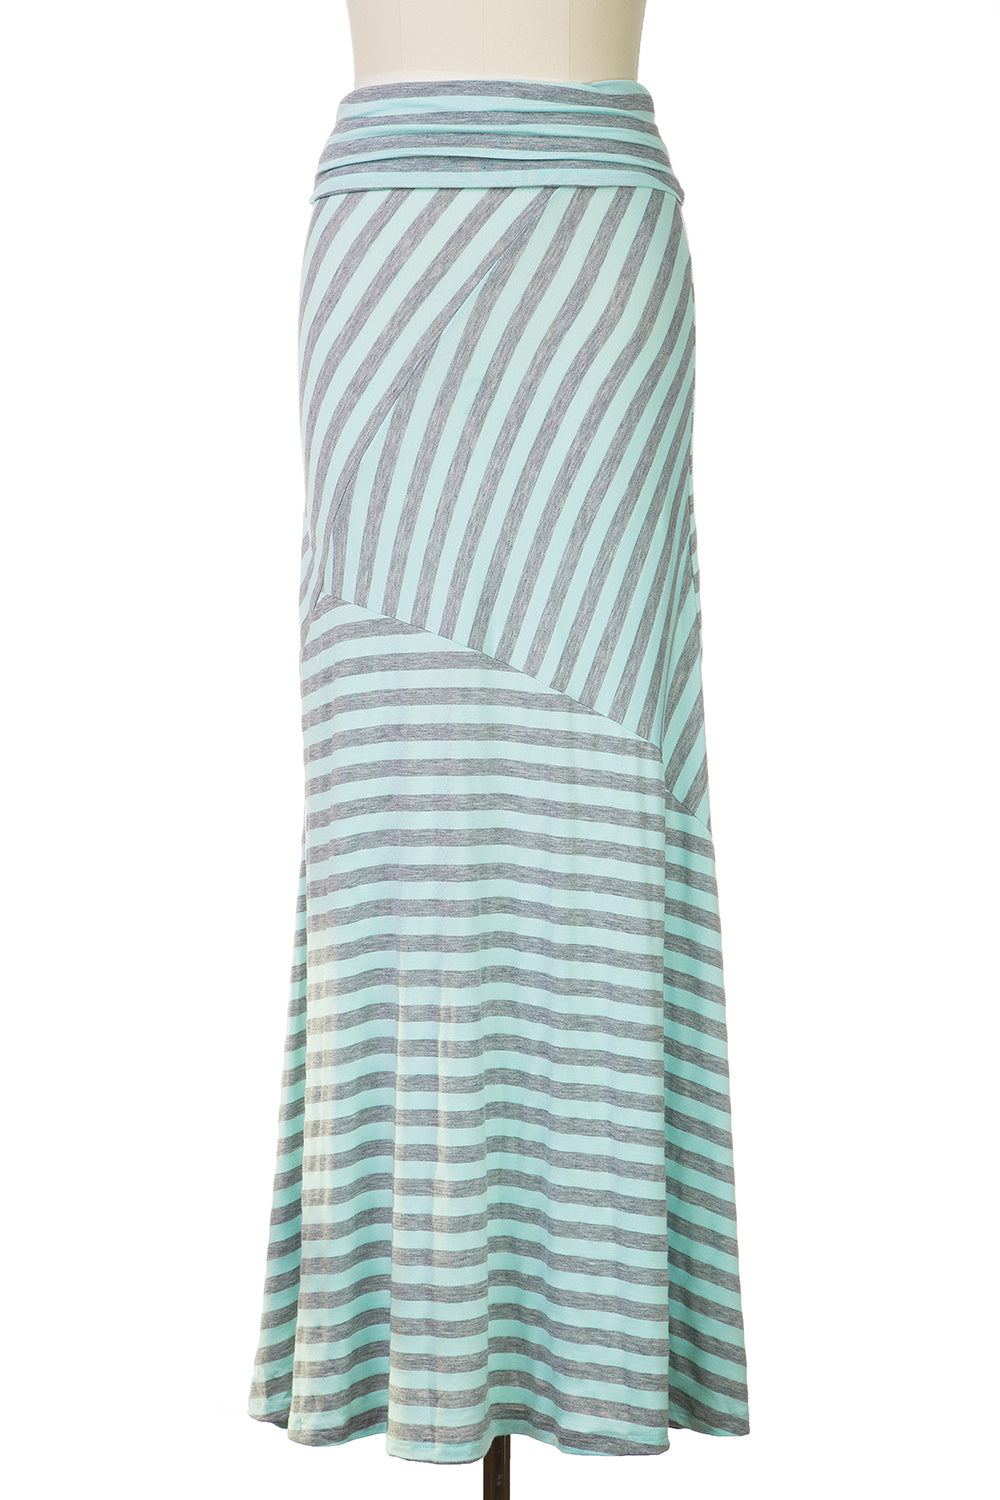 Type 2 Gray and Blue Striped Maxi Skirt